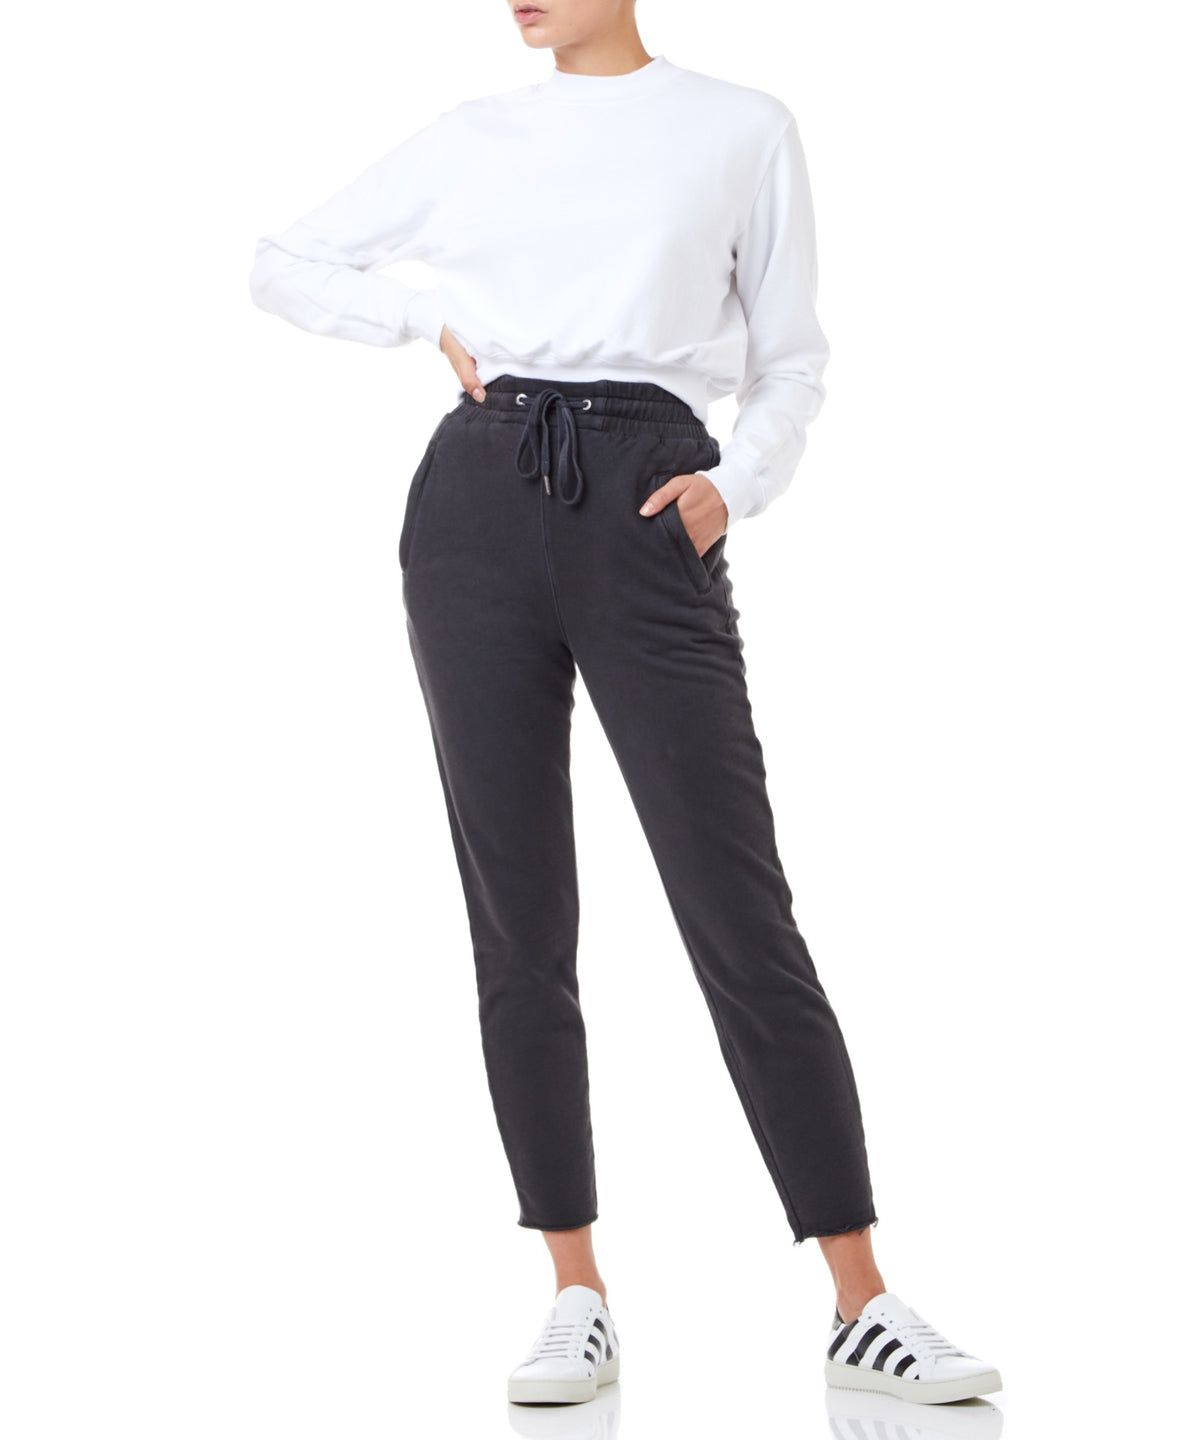 Ksubi Hi Def Trax Women Black Sweatpants